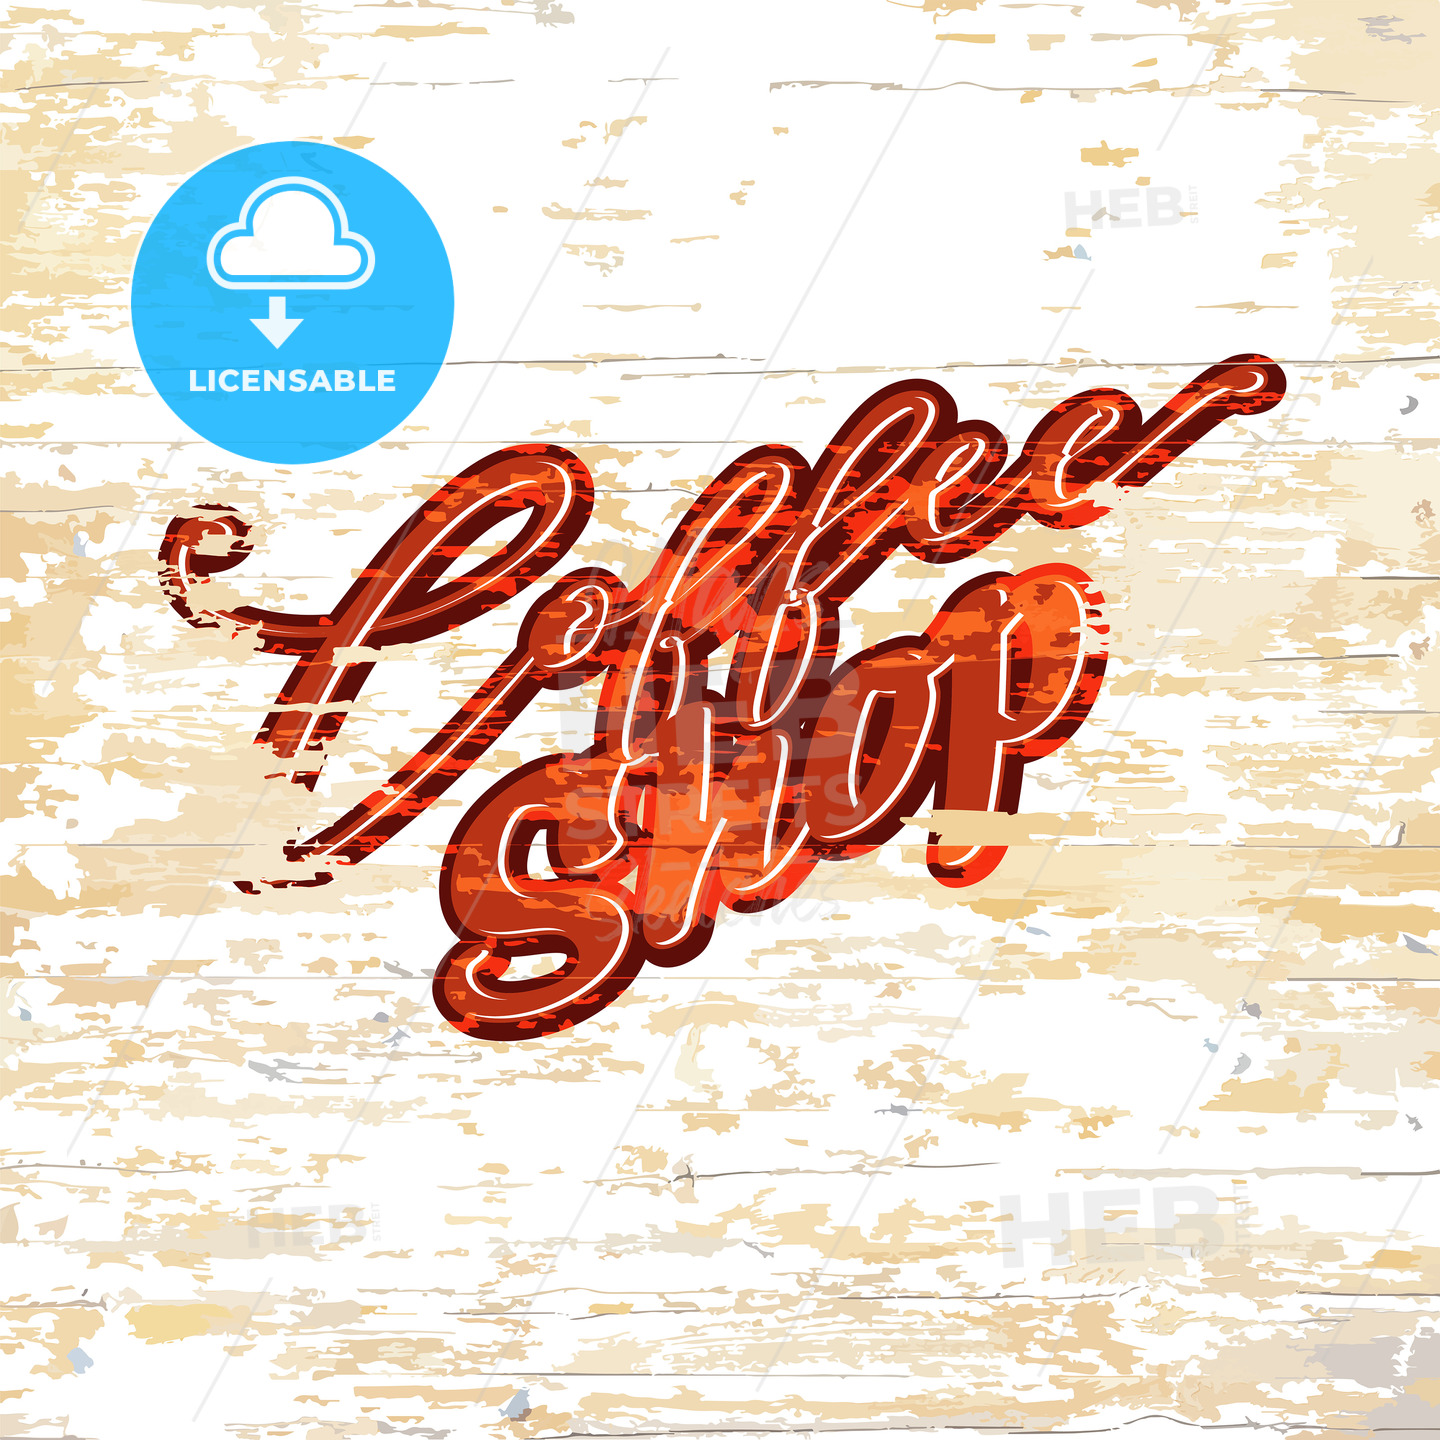 Coffee shop lettering on wooden background